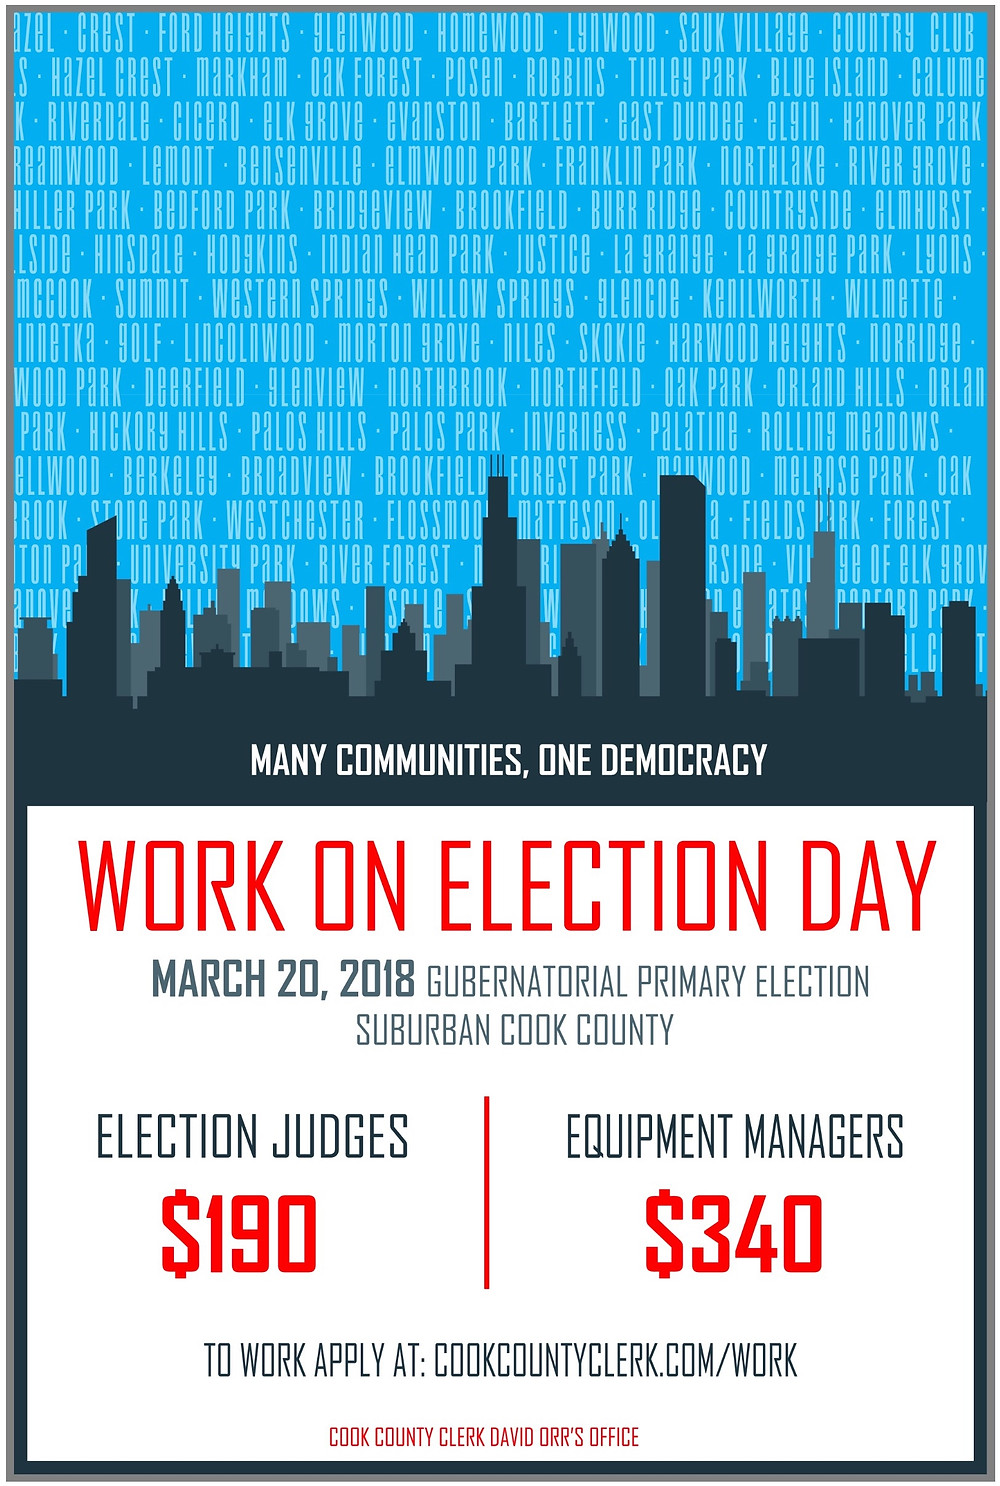 Work the elections for Suburban Cook County Illinois